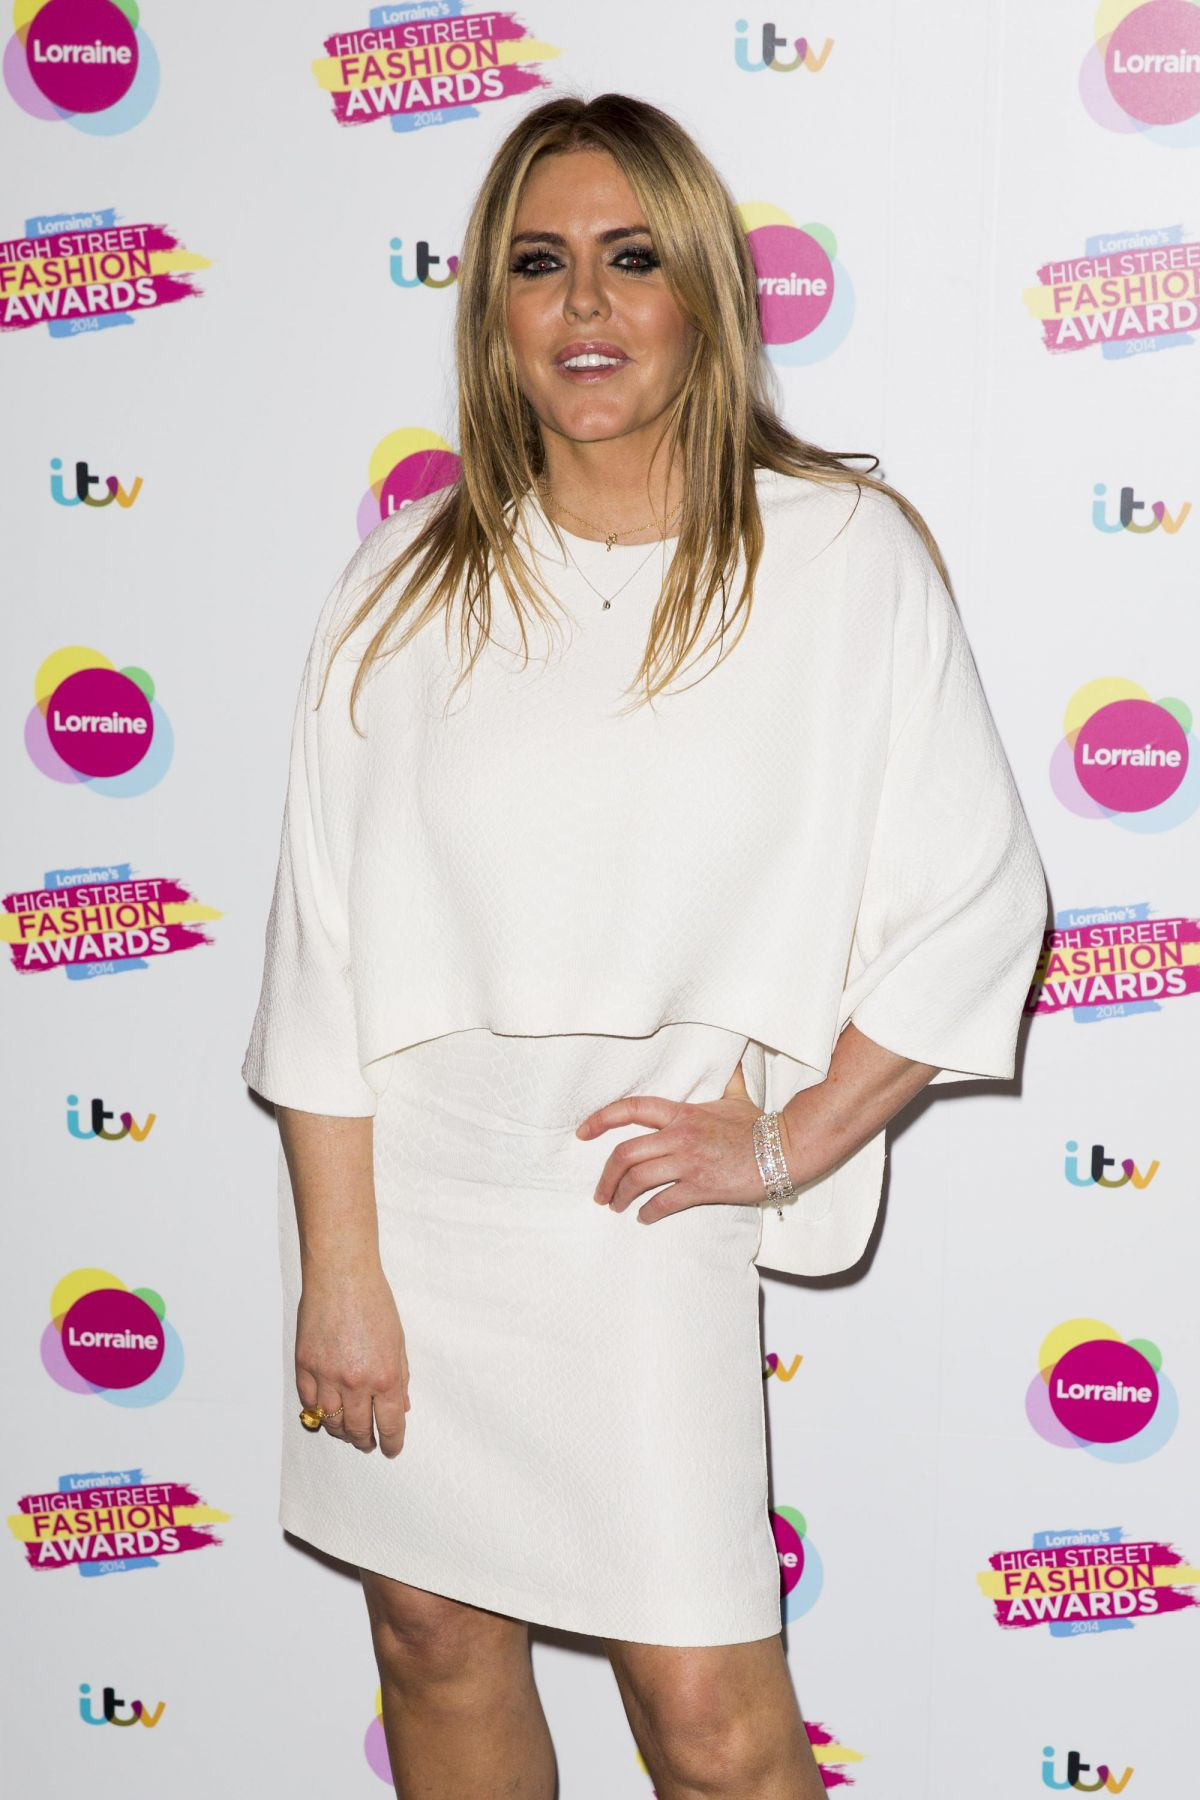 PATSY KENSIT at Lorraine's High Street Fashion Awatds in London